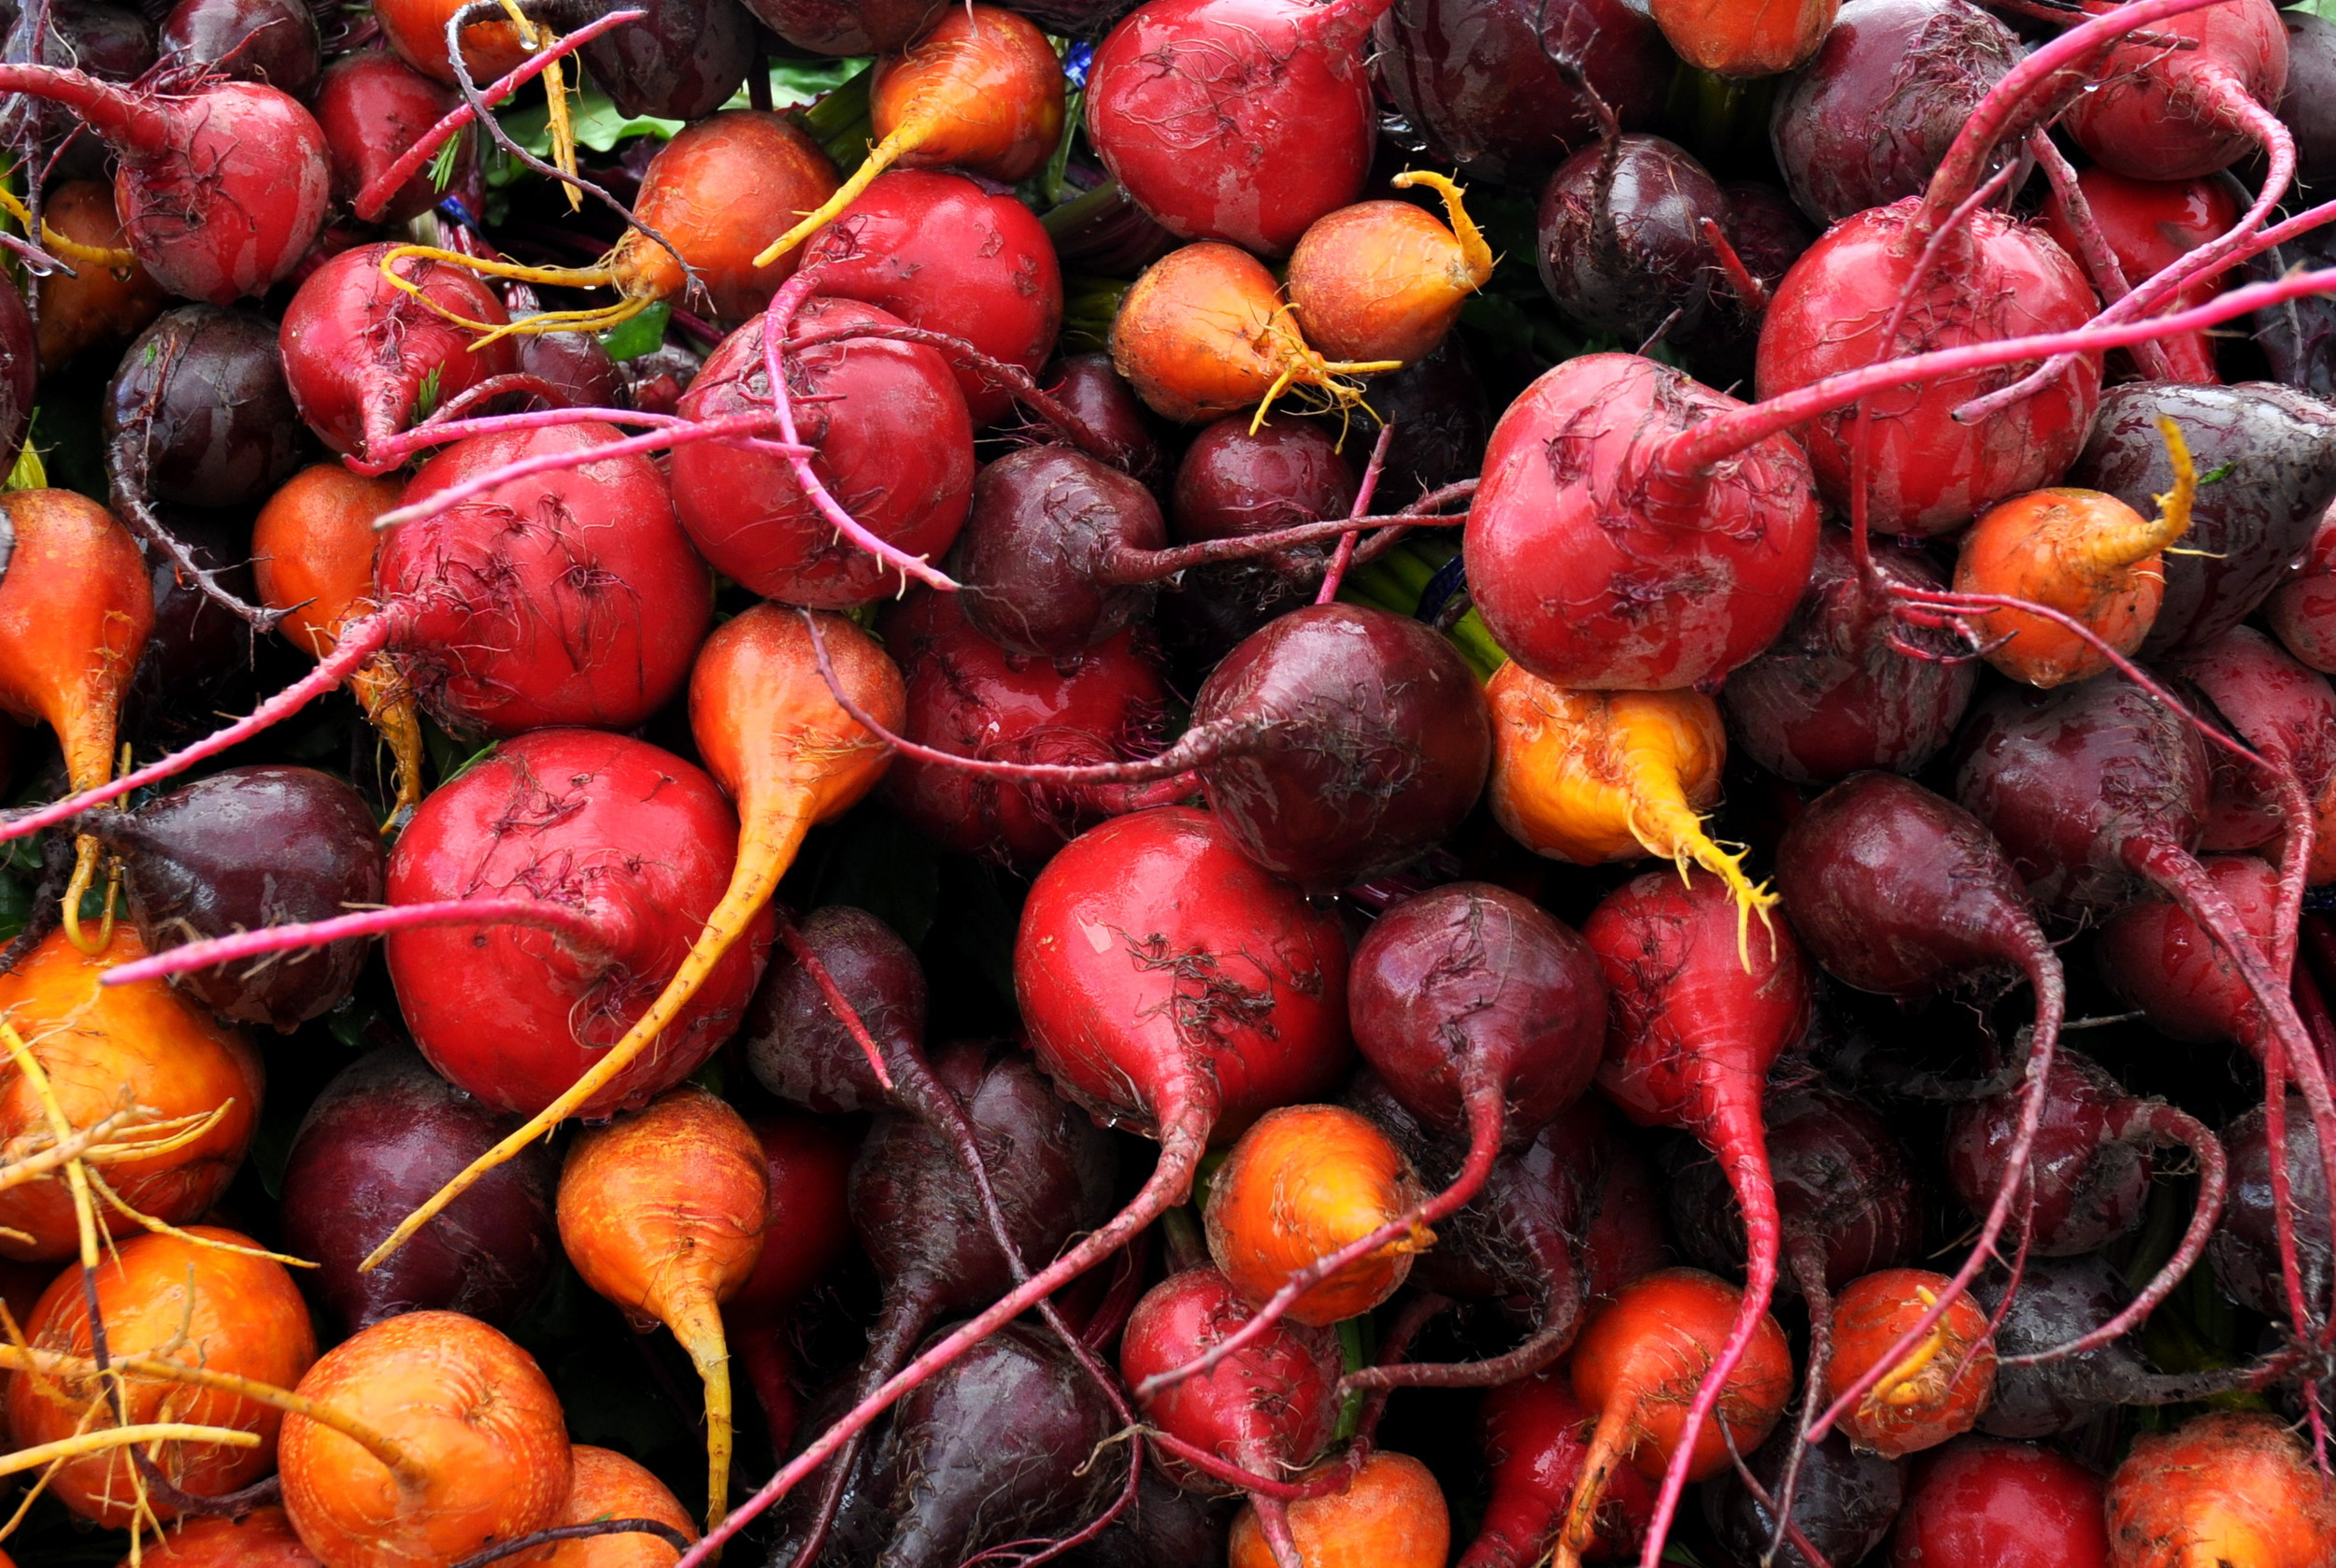 Mixed beets from Kirsop Farm. Photo copyright 2013 by Zachary D. Lyons.